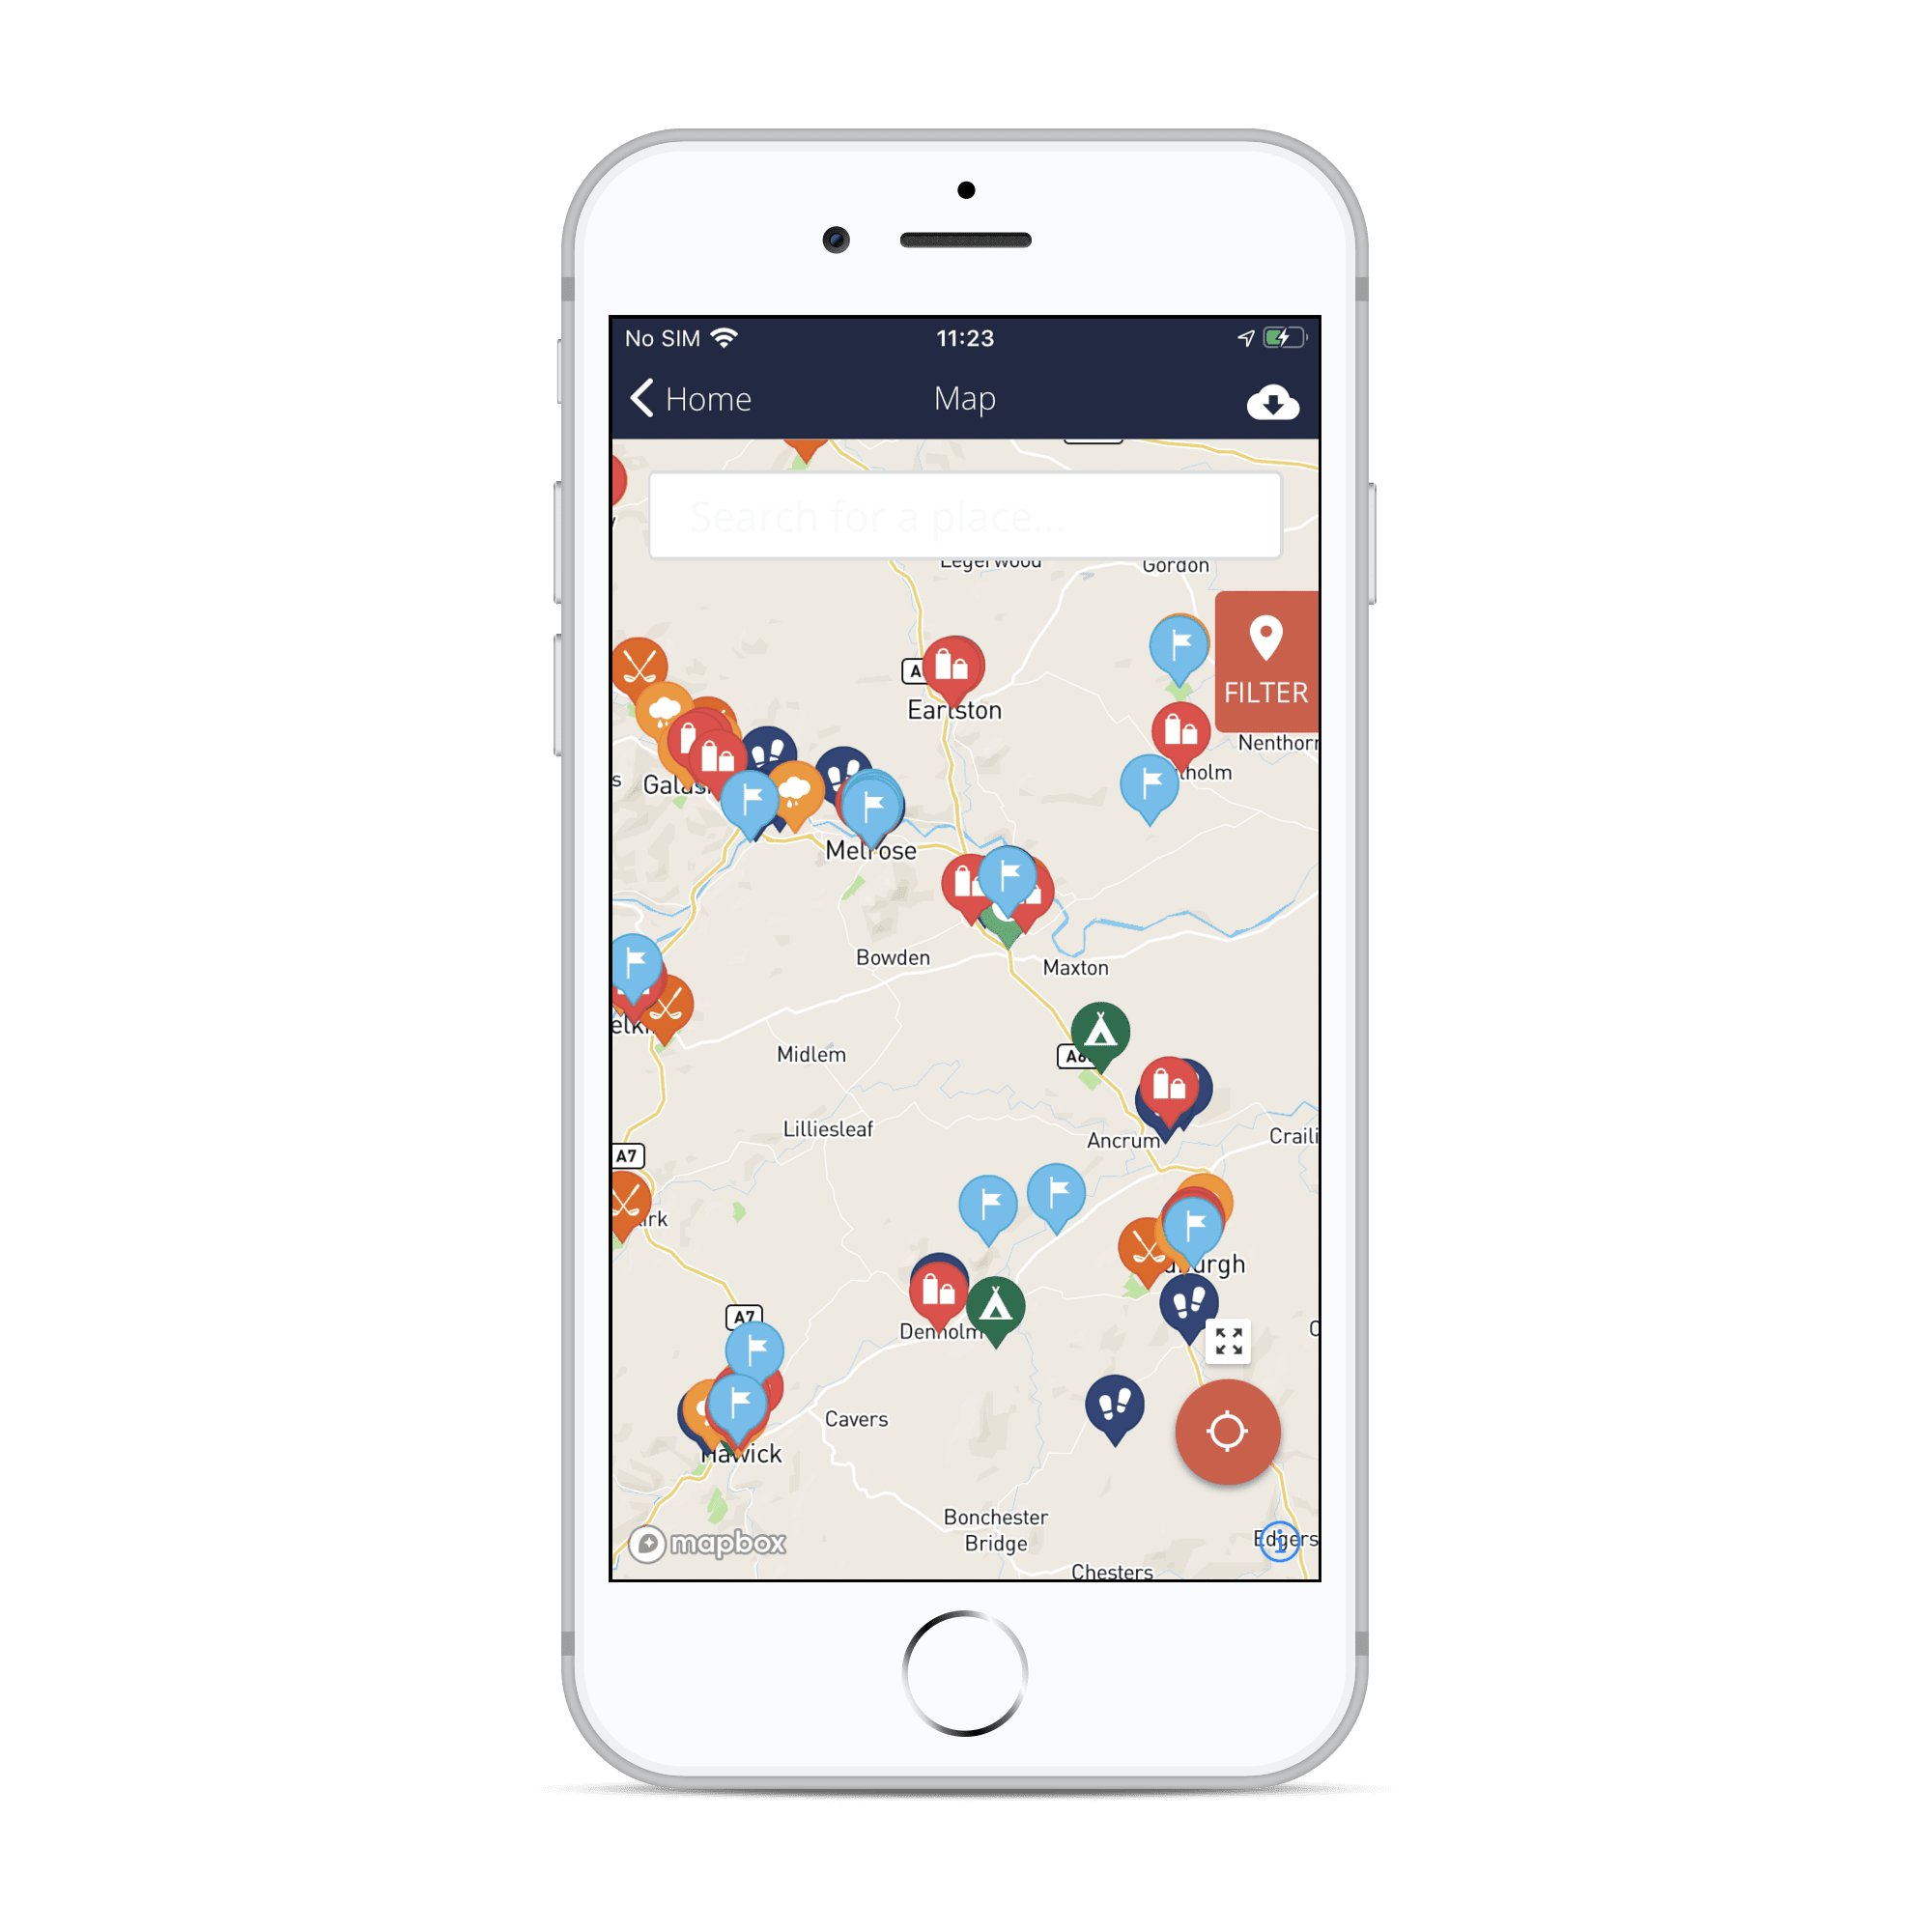 Phone showing app's interactive map